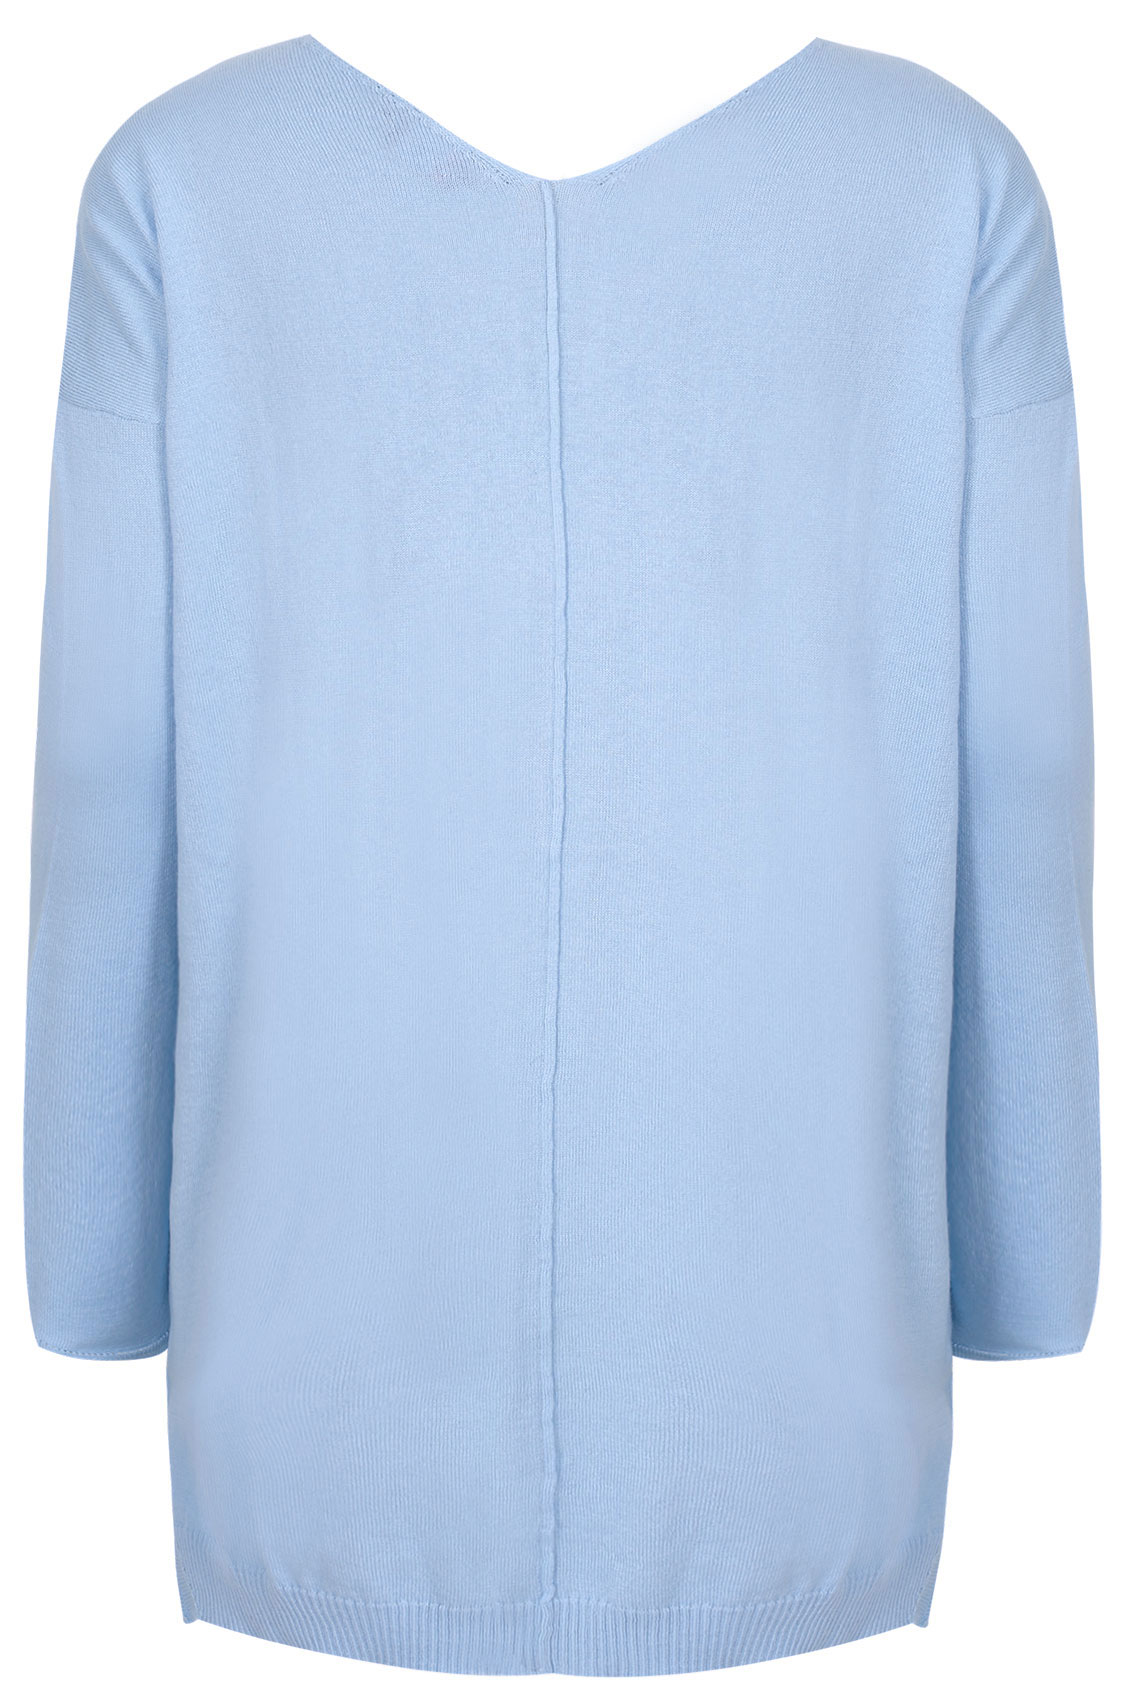 Powder Blue Knitted V-Neck Longline Jumper With Step Hem, Plus size 16 to 36